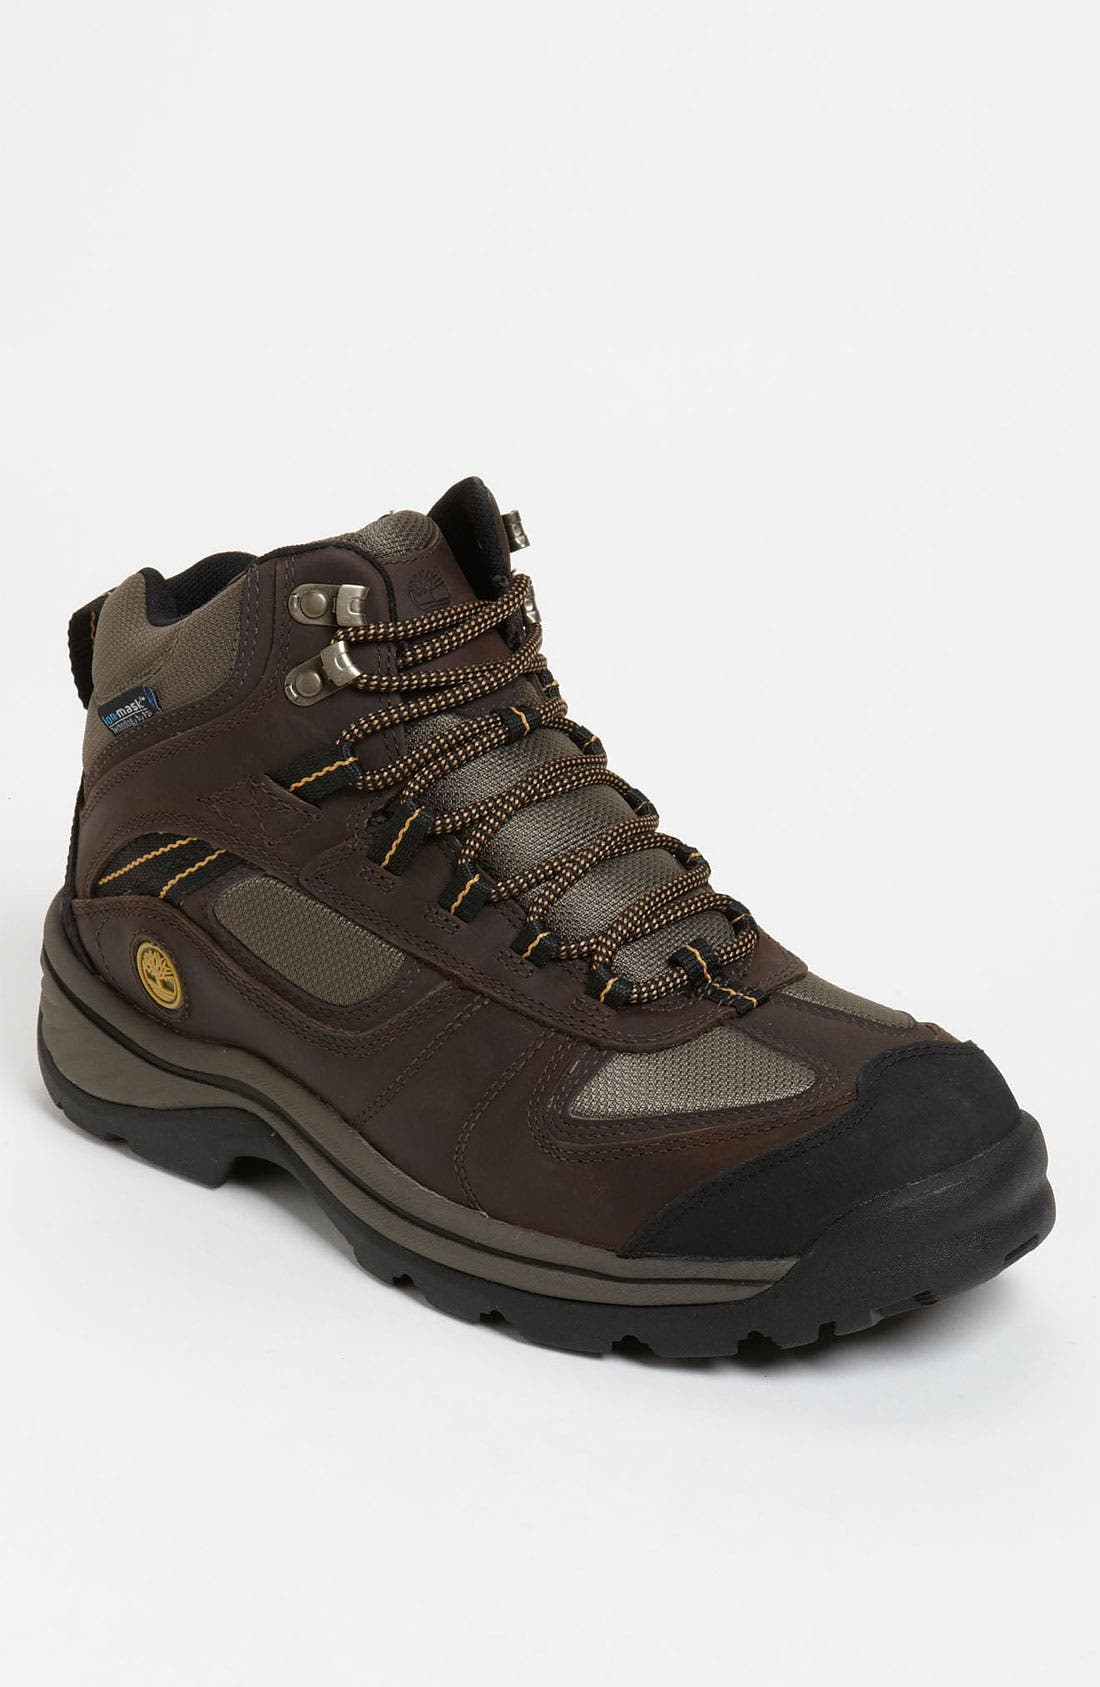 Alternate Image 1 Selected - Timberland 'Chochorua Trail FTP' Hiking Boot (Men)